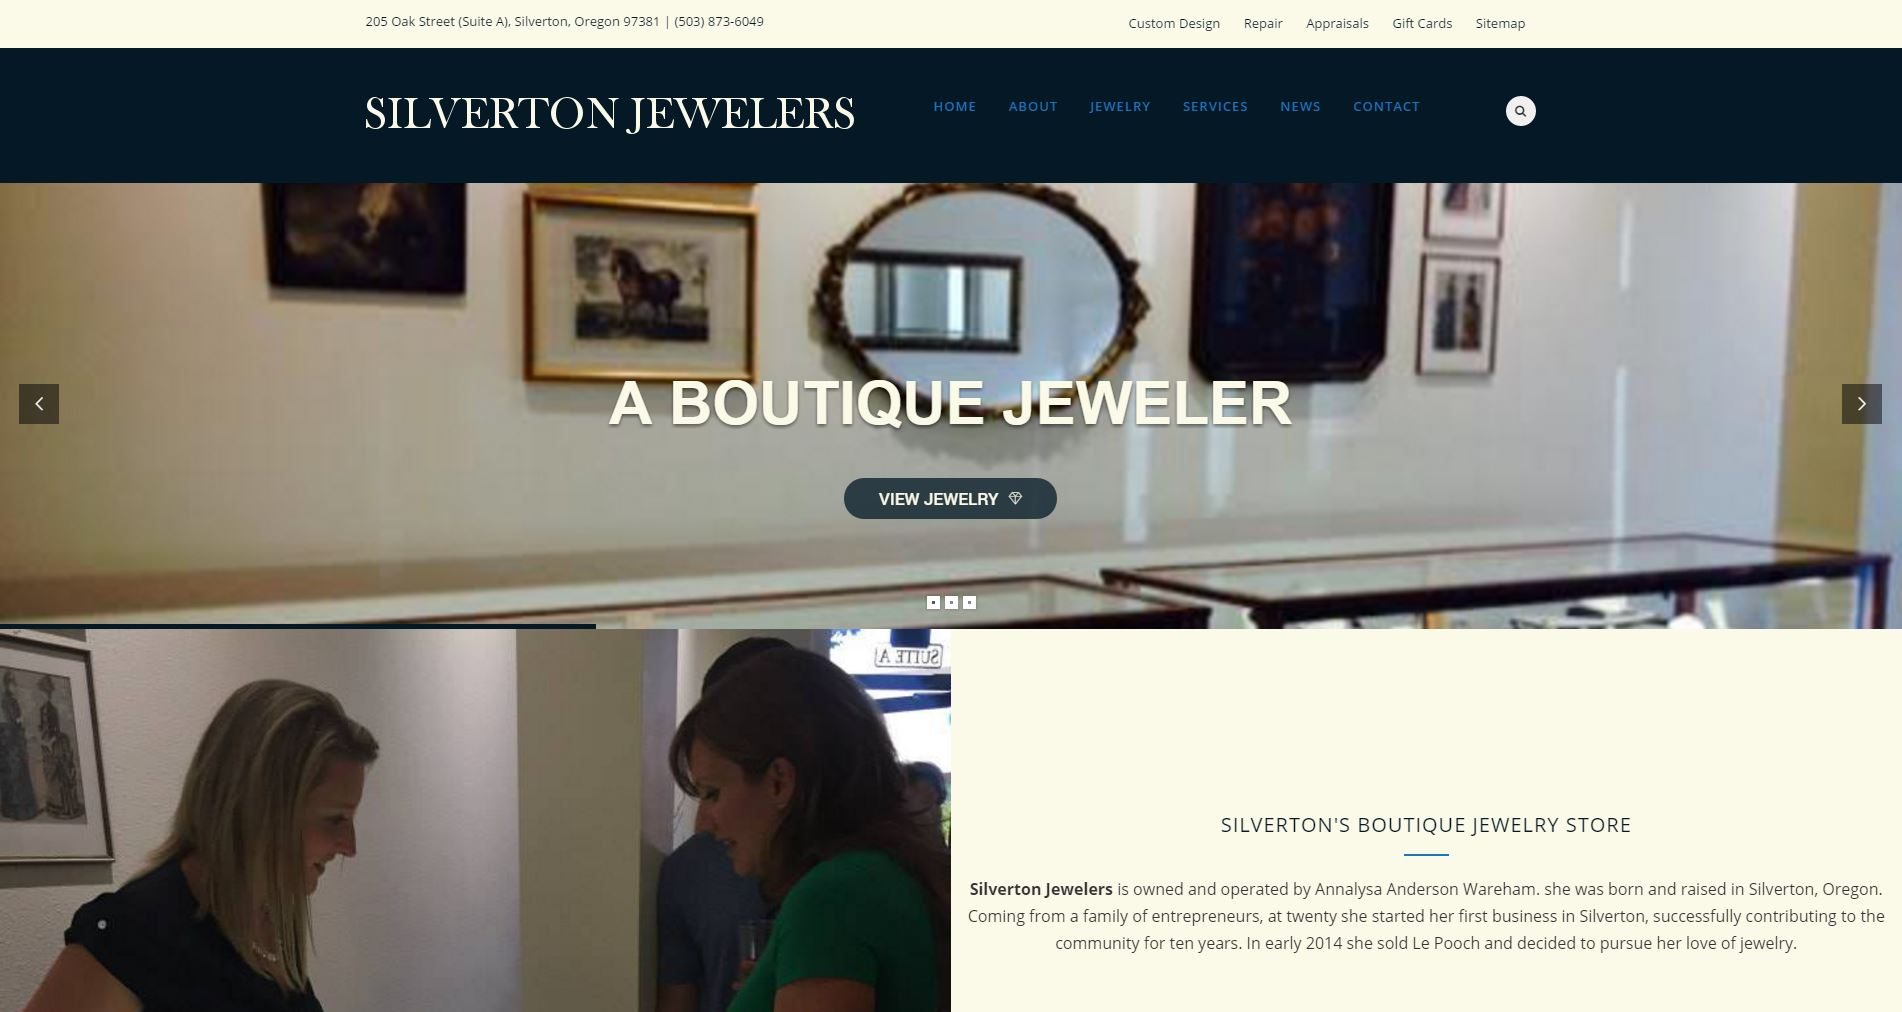 Jewelry Website Design sj1